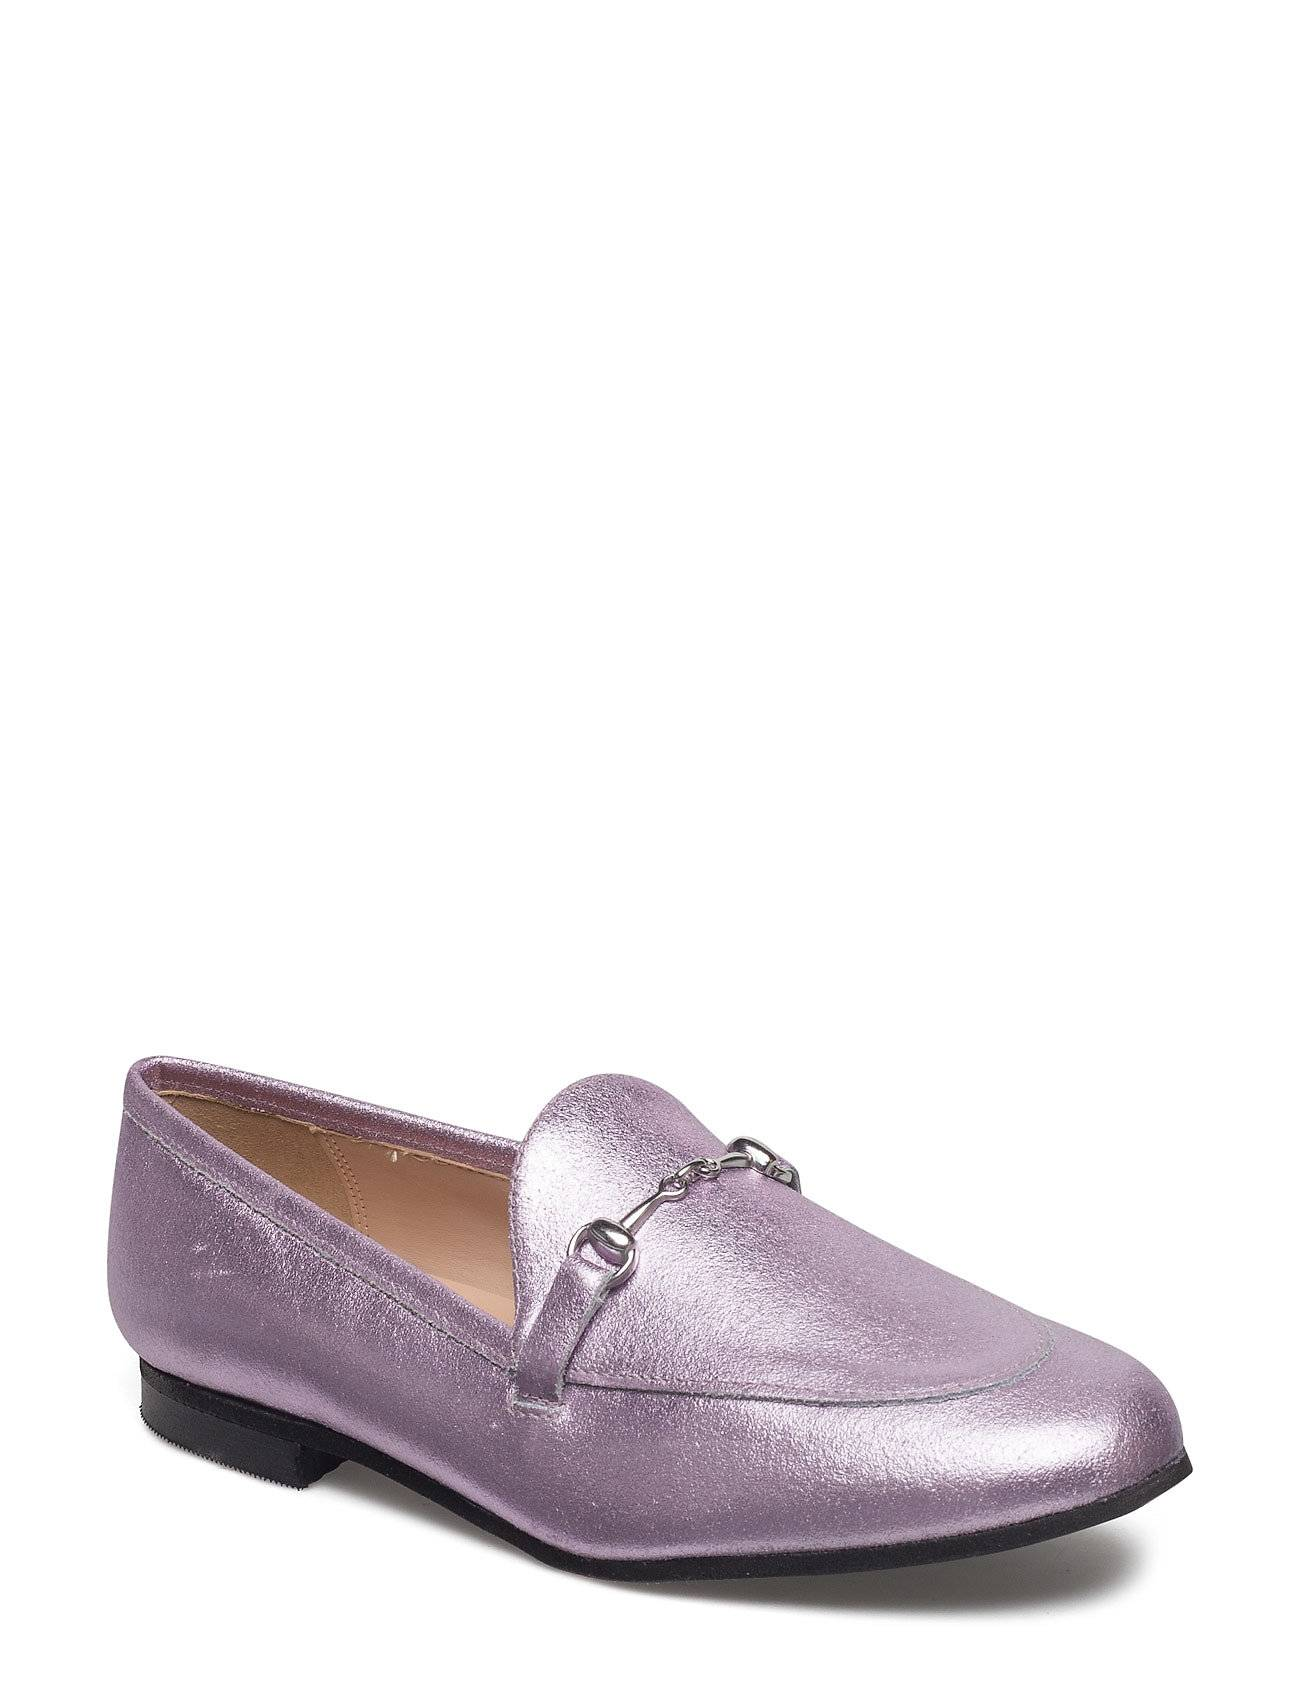 Bianco Dress Horsebite Loafer Exp17